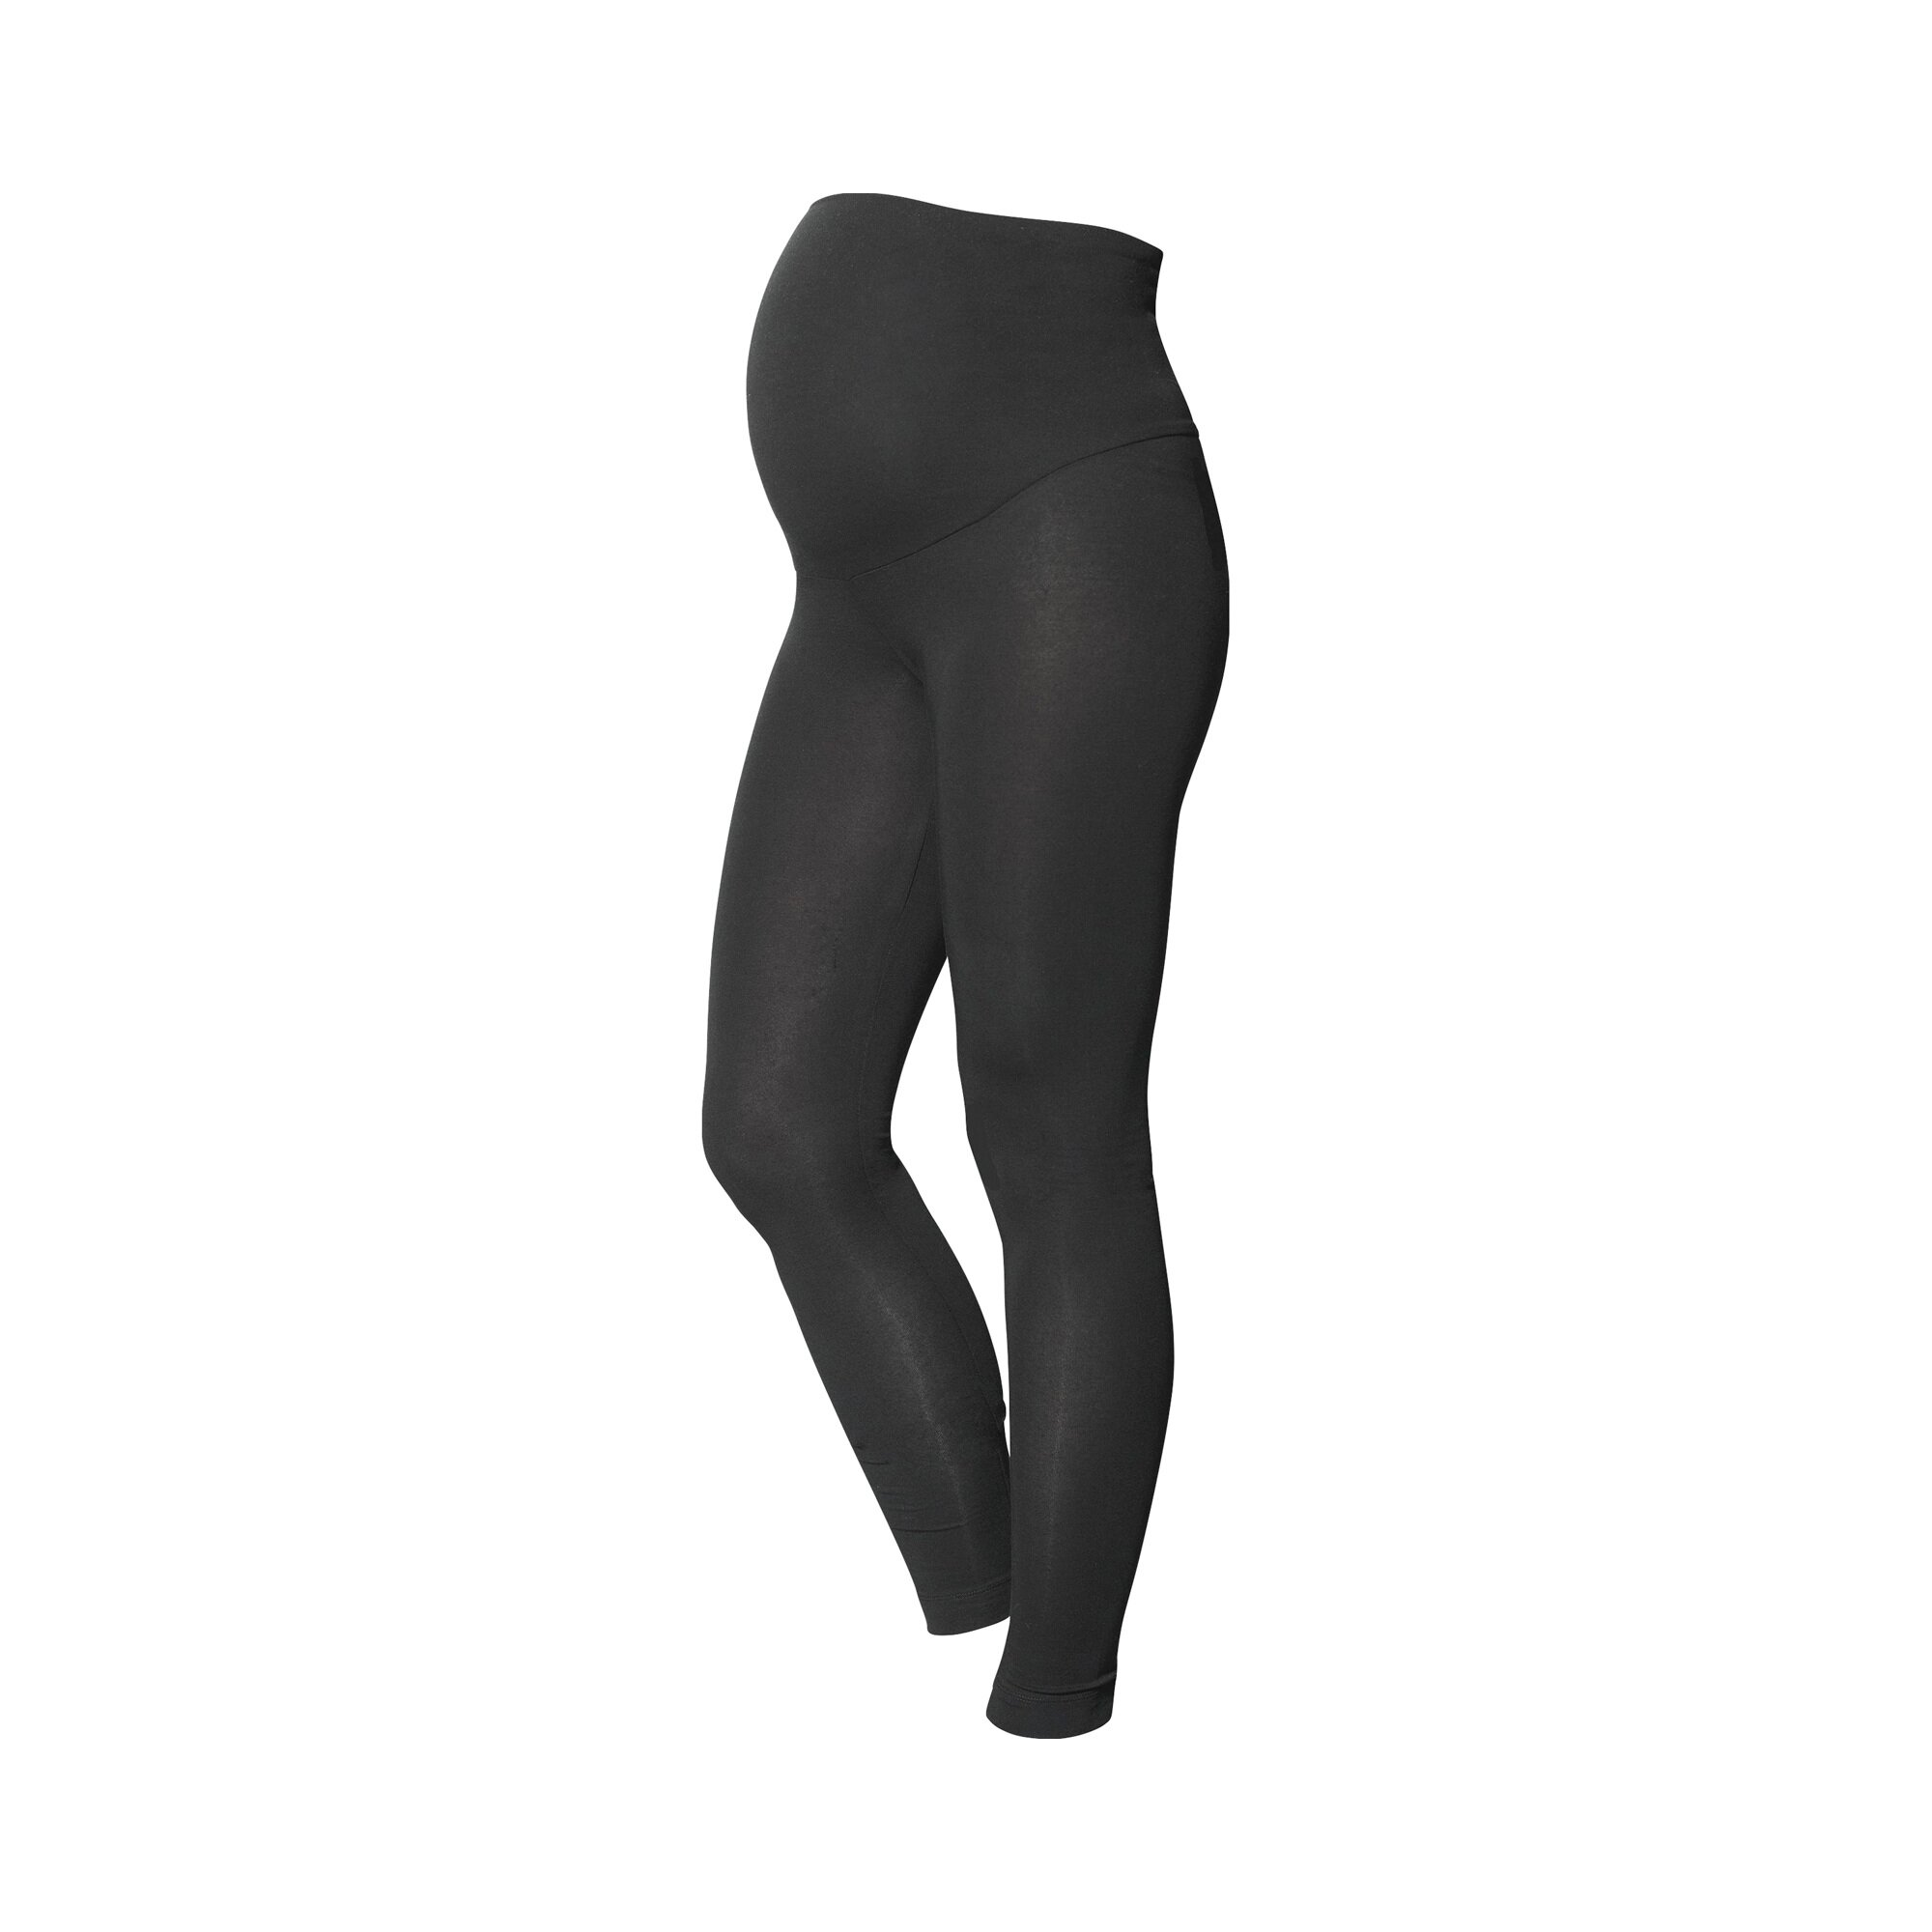 boob-umstandsleggings-once-on-never-off-schwarz-l-m-s-xl